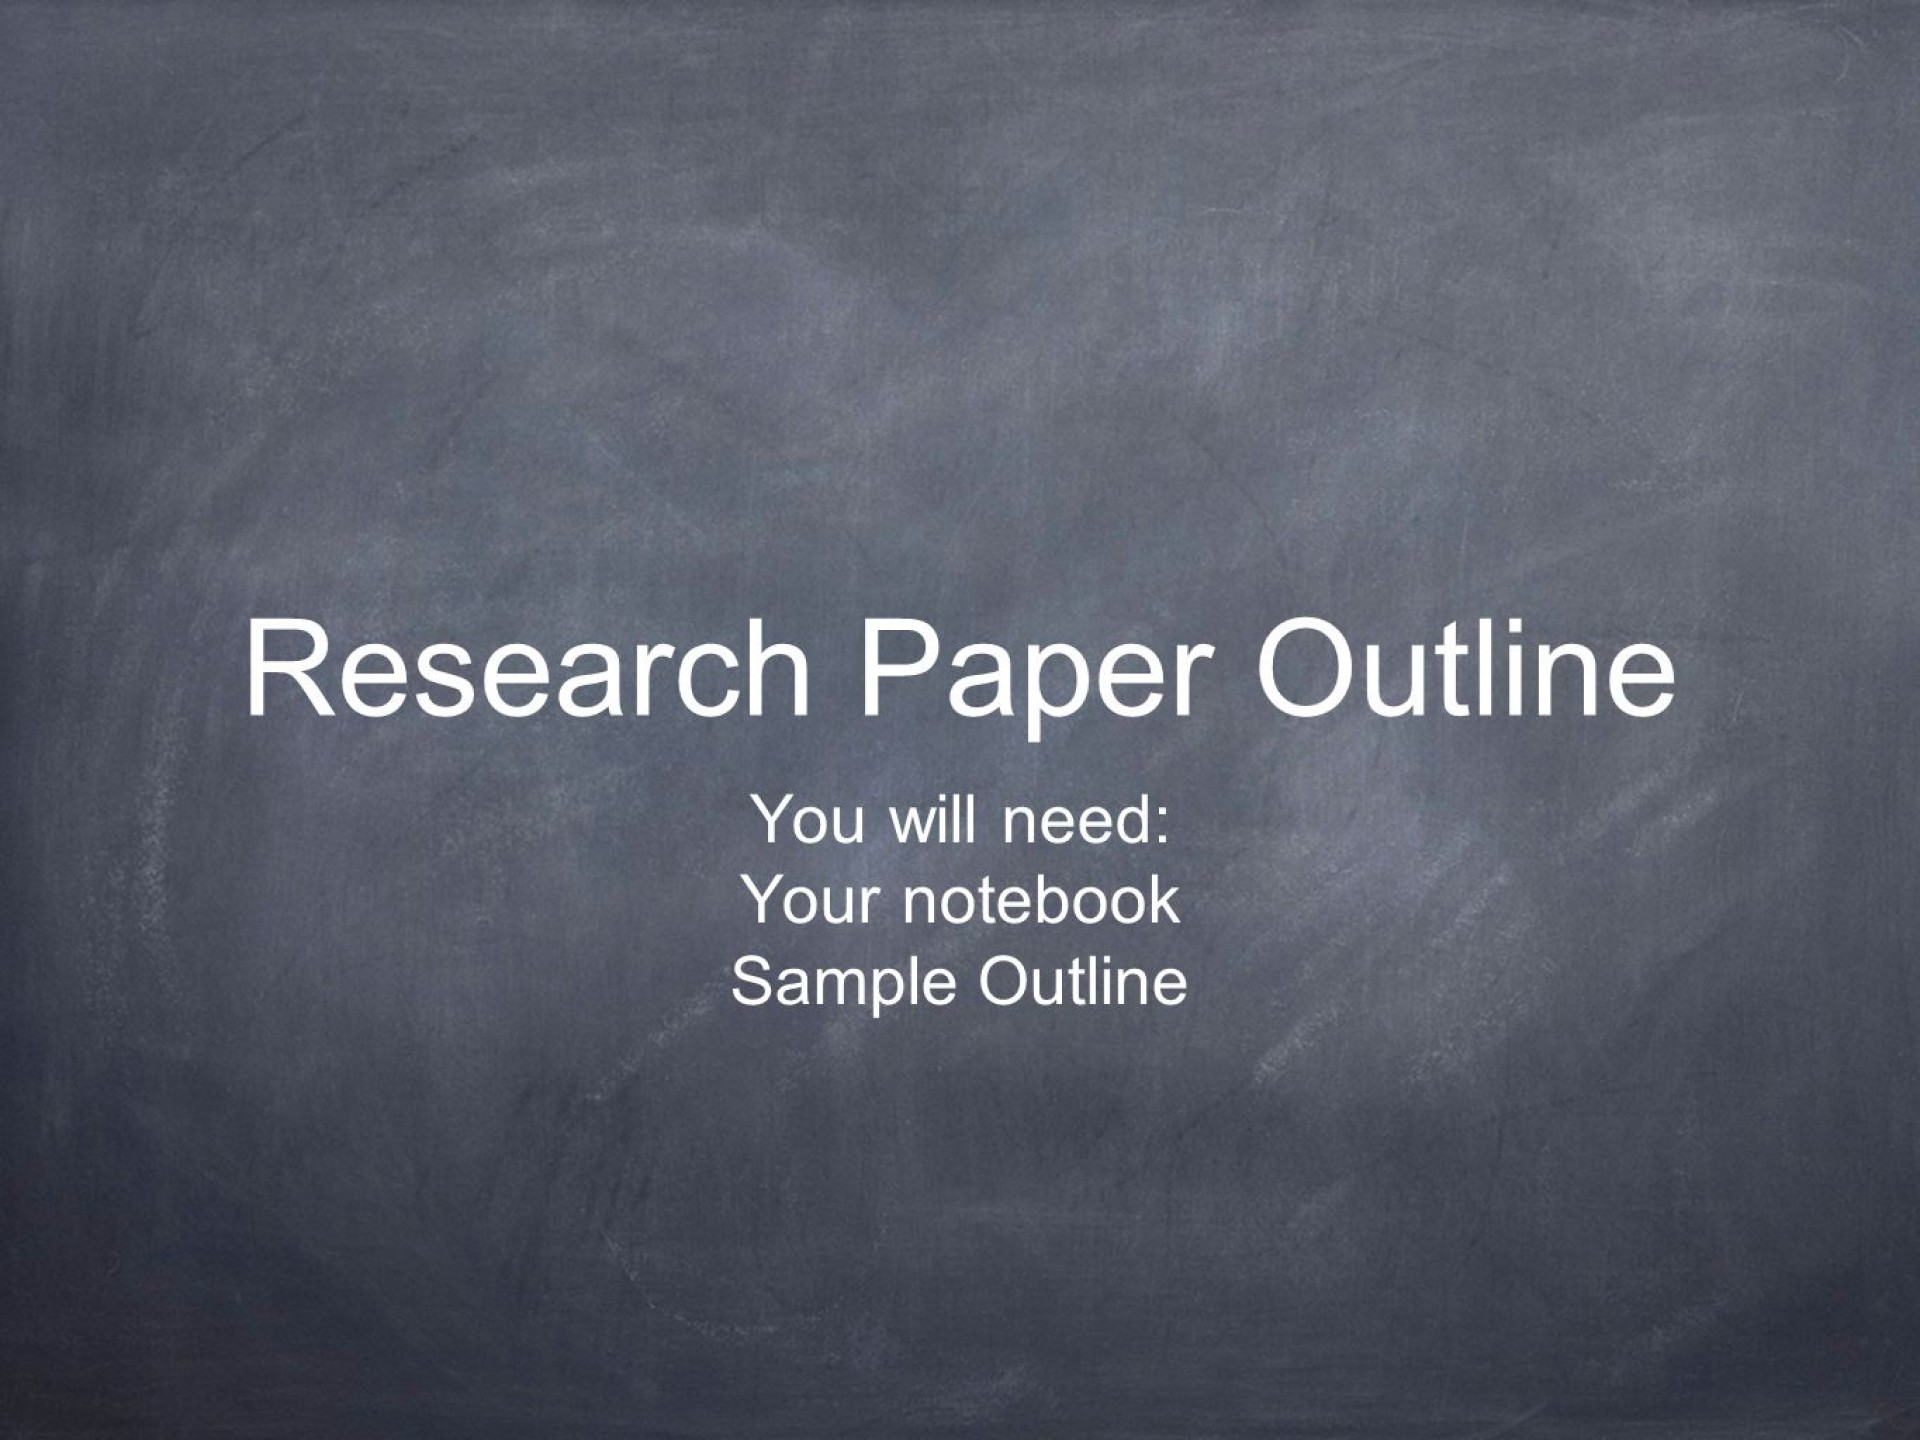 011 Outline For Research Paper Powerpoint Slide 1 Awesome Of Ppt 1920